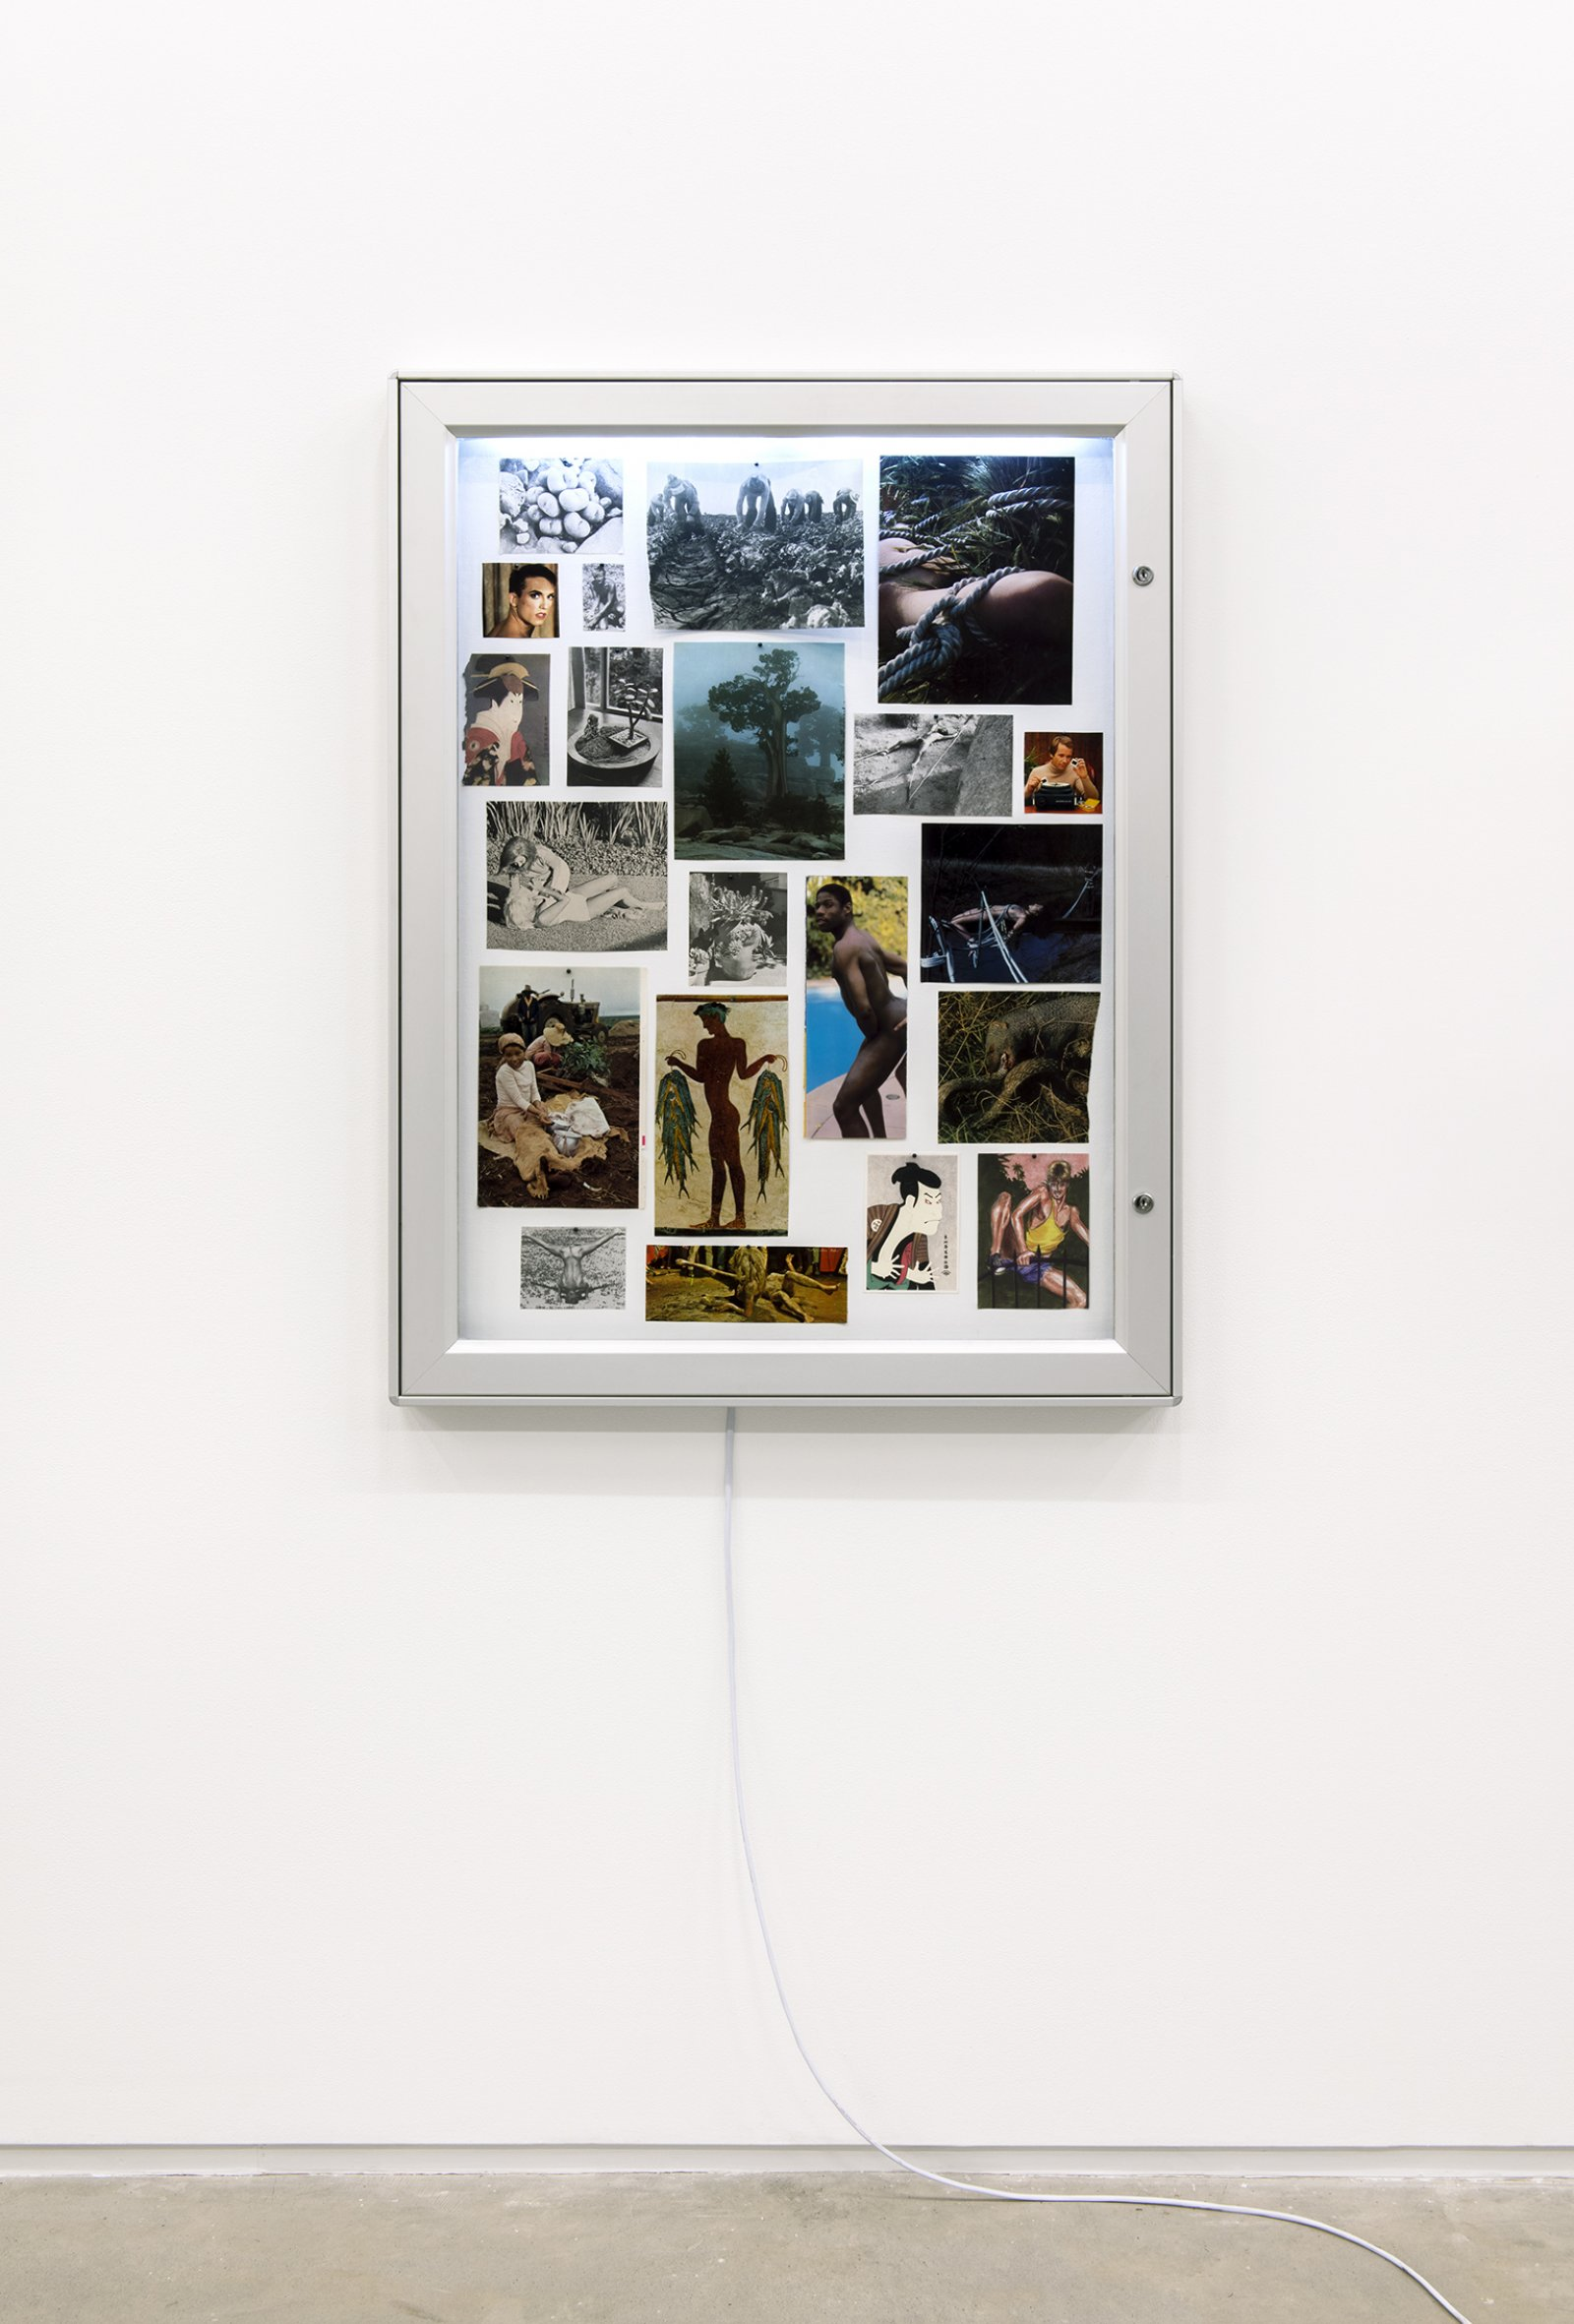 Geoffrey Farmer,Proof of an External World, 2011, display case, images cut from books and magazines, map tacks, 32 x 43 x 2 in. (82 x 108 x 5 cm)